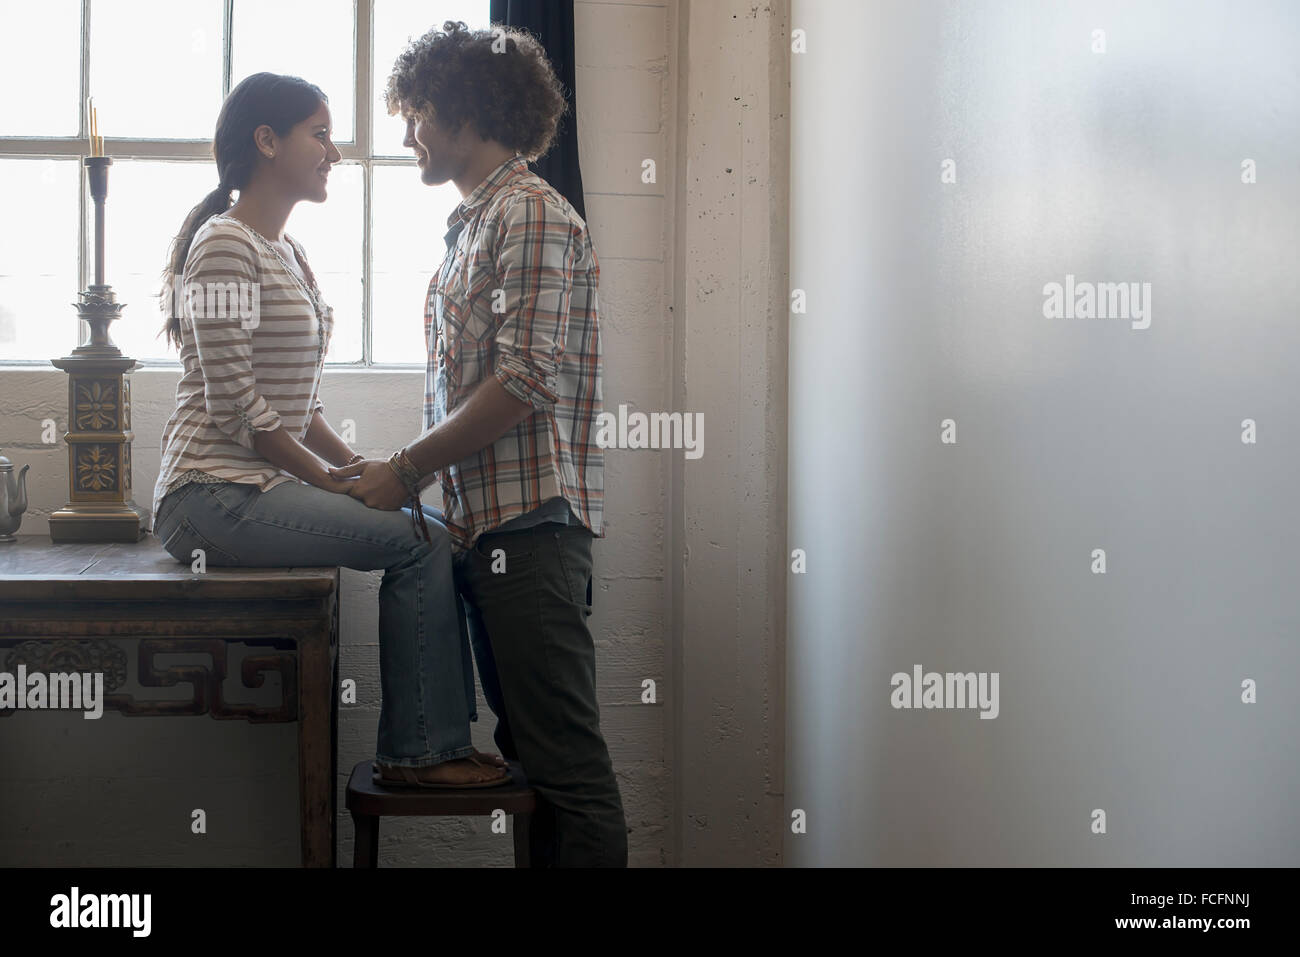 Loft living. A couple facing each other holding hands. - Stock Image